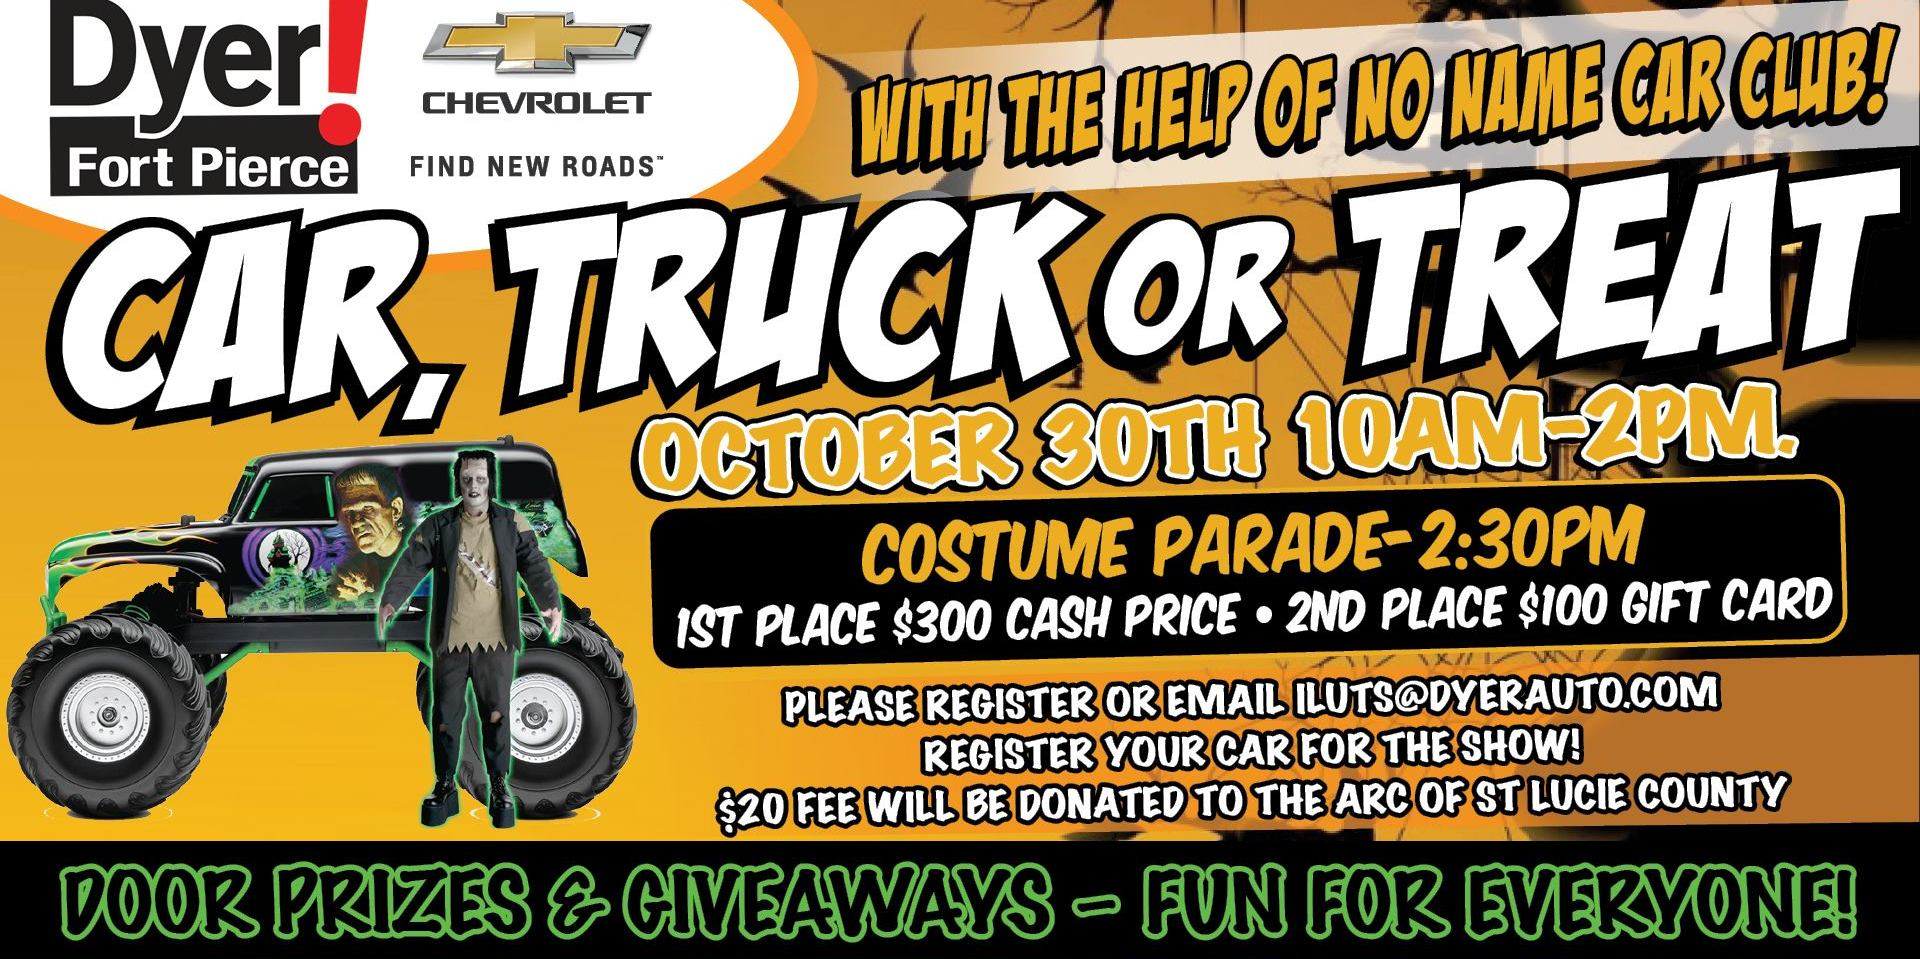 CAR show, TRUCK or TREAT